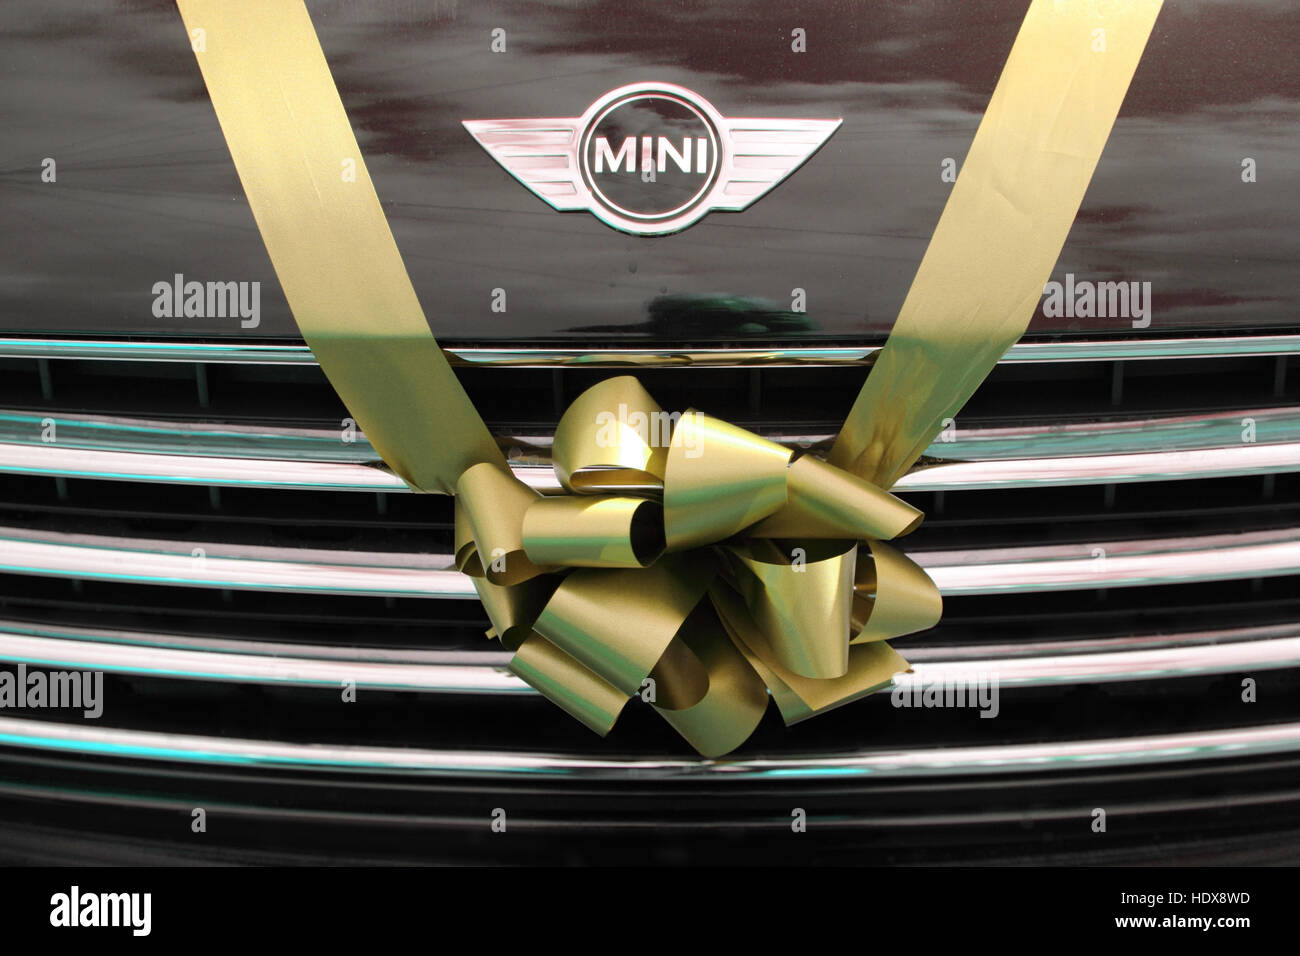 BMW Mini used as a wedding car, tied with a gold yellow ribbon and bow over the radiator grill. - Stock Image